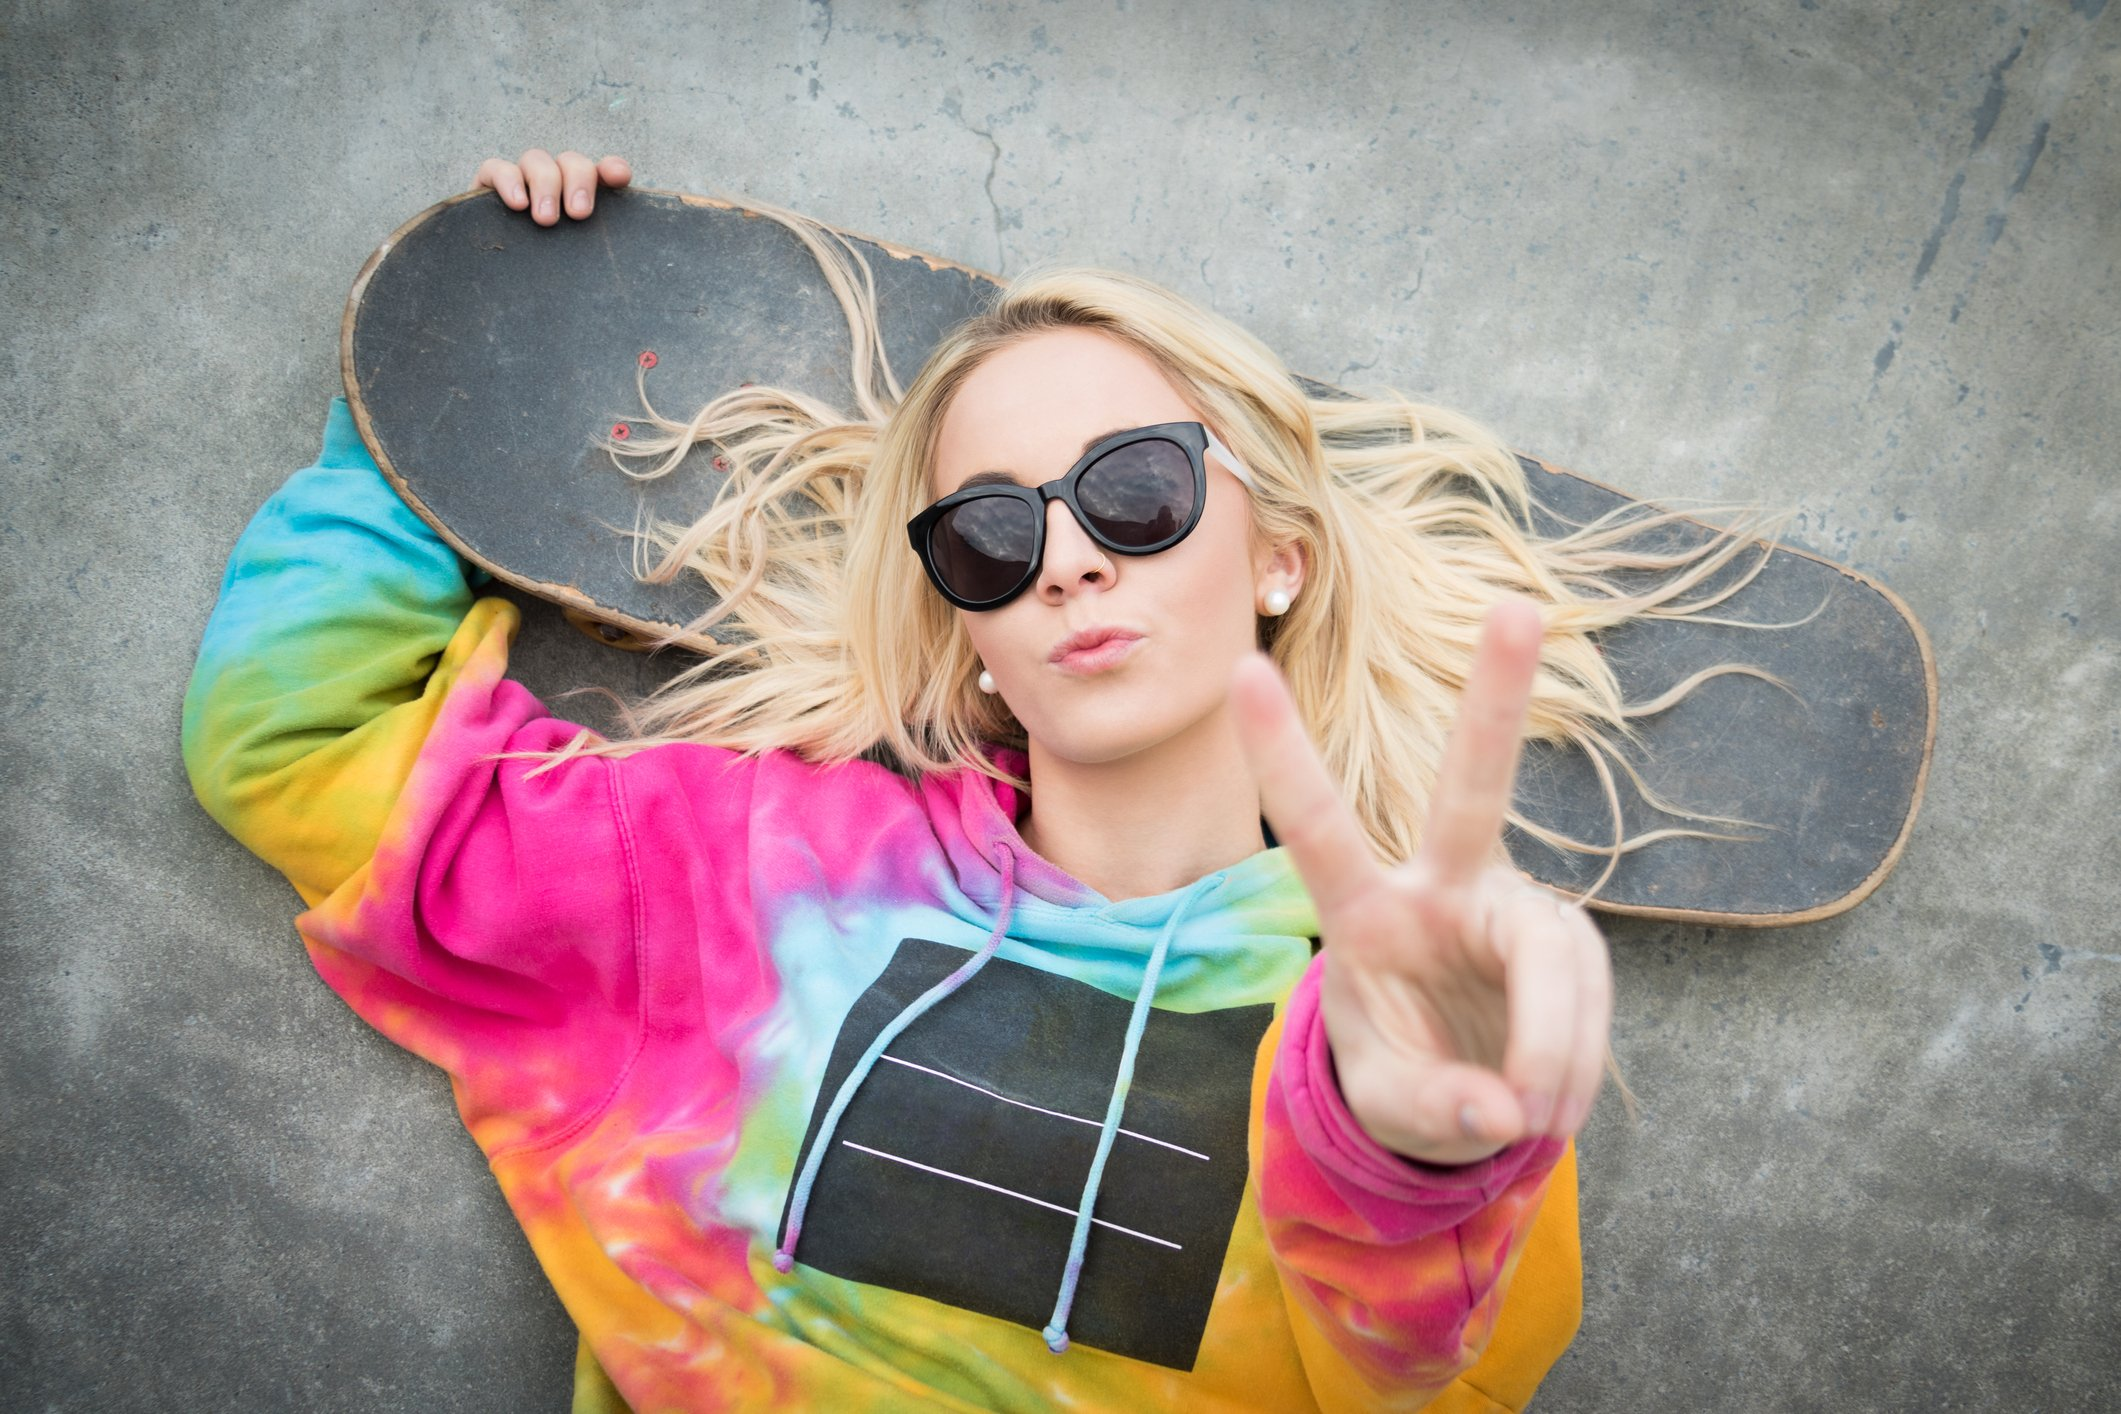 Pretty blond skater girl giving peace sign